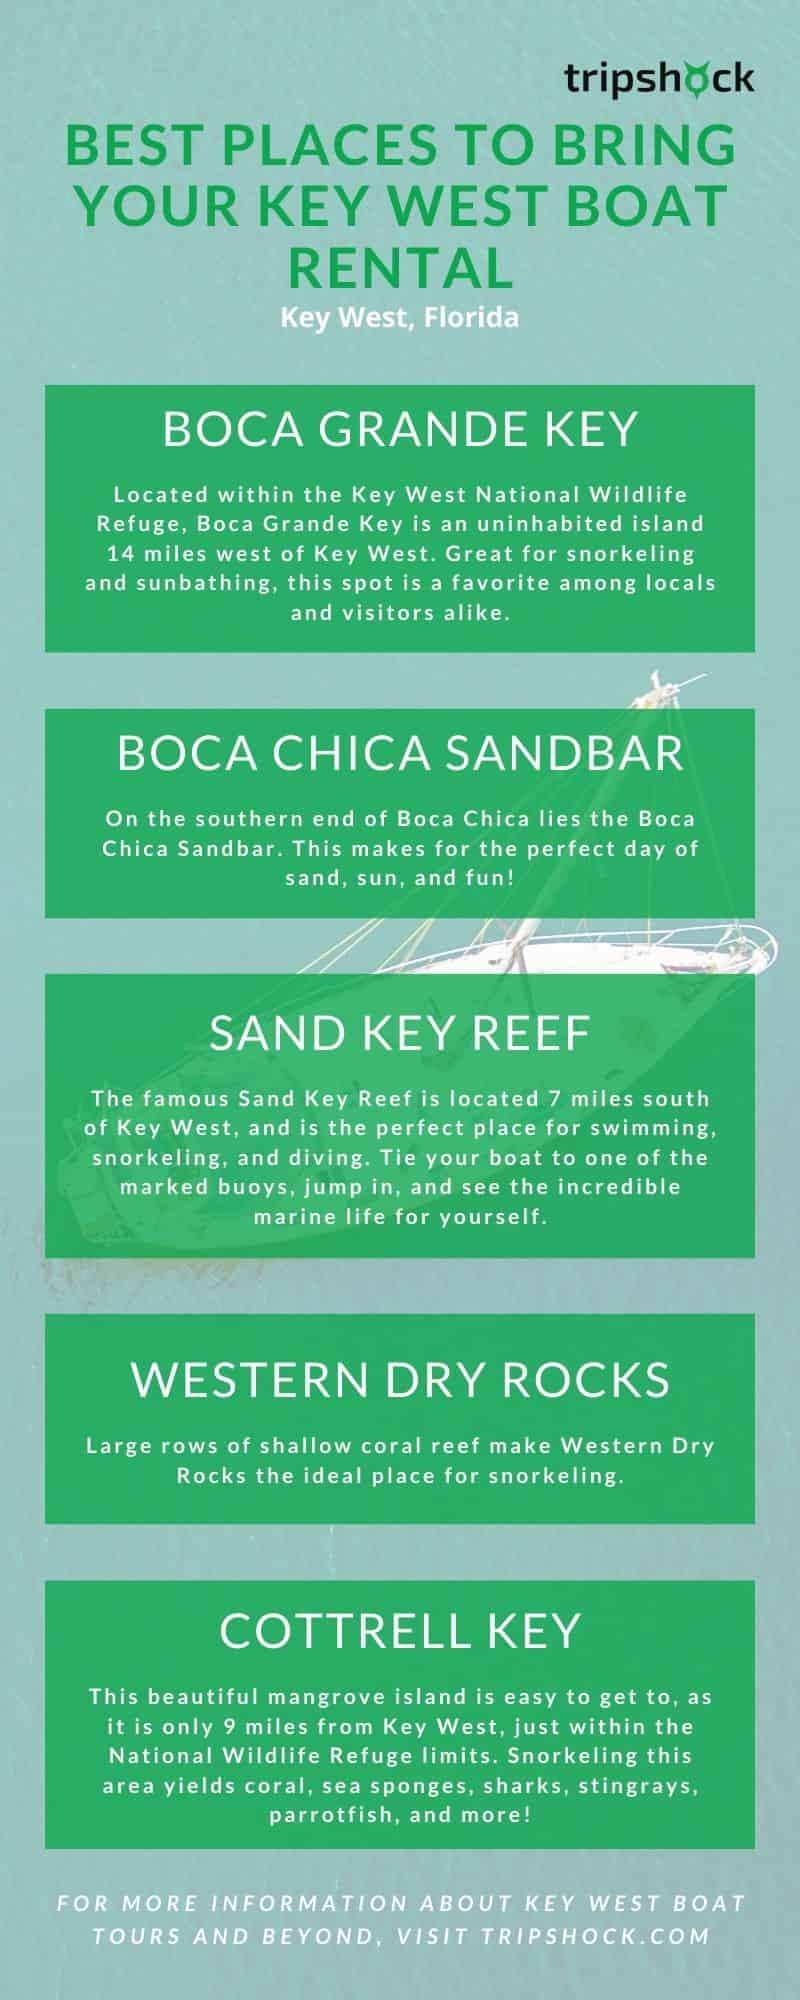 Best Places to Visit in Key West by Boat